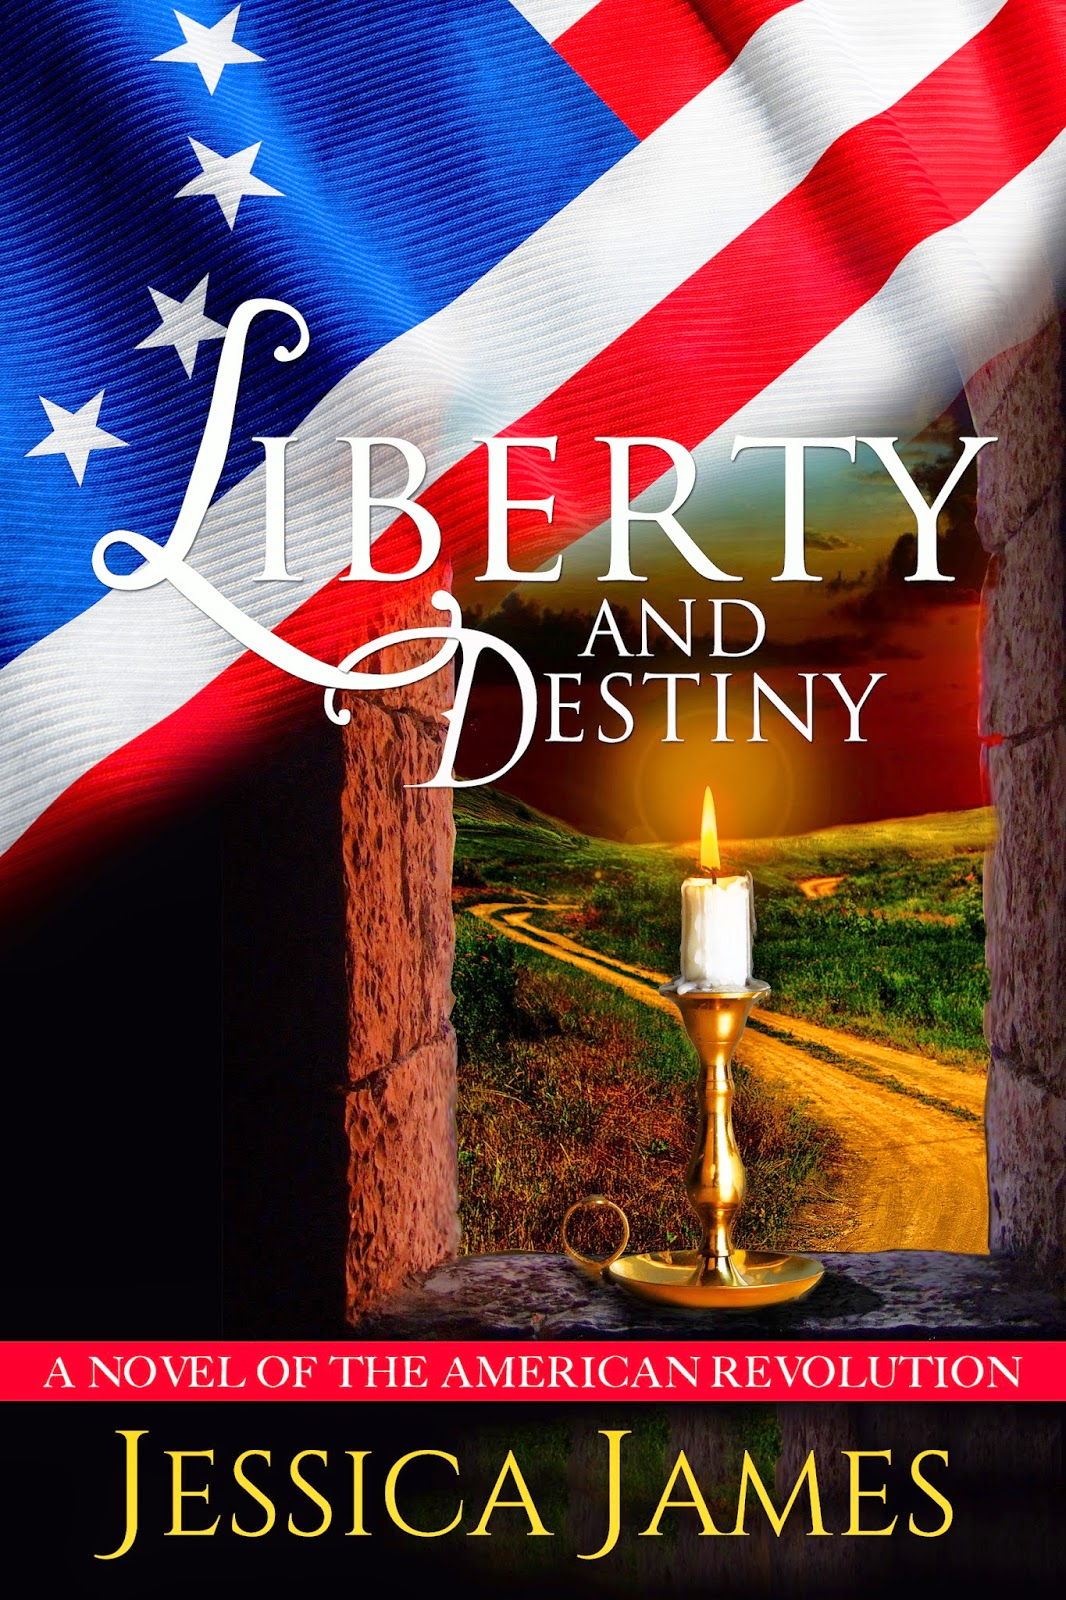 Historical Fiction author Jessica James' Revolutionary War novella